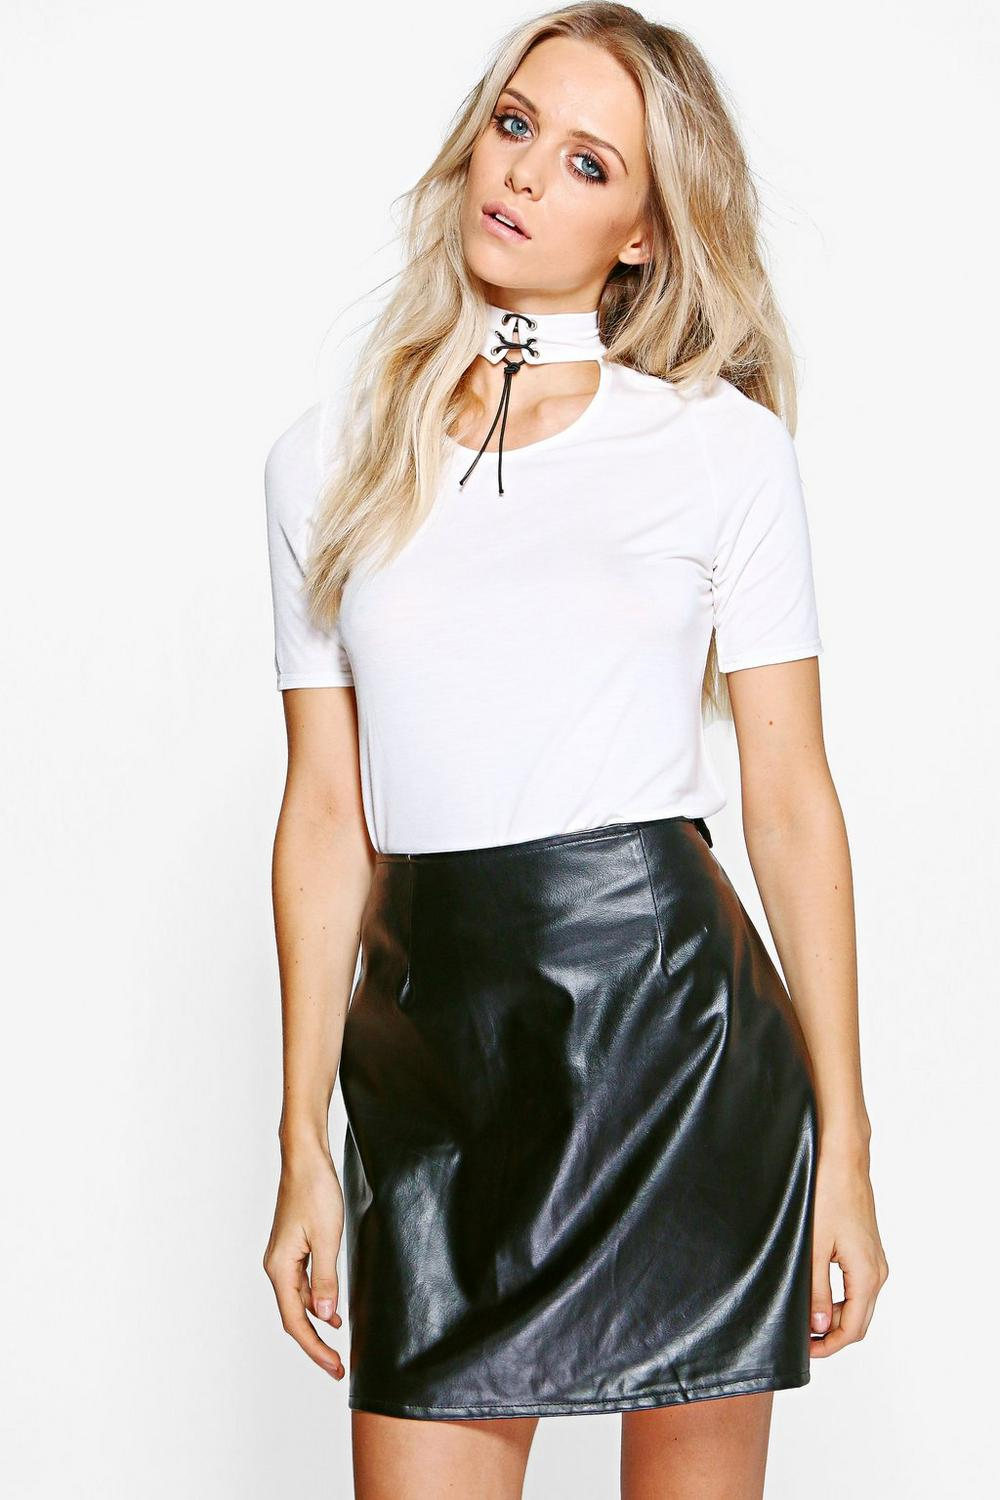 Norma Lace Up Choker S/S T-Shirt